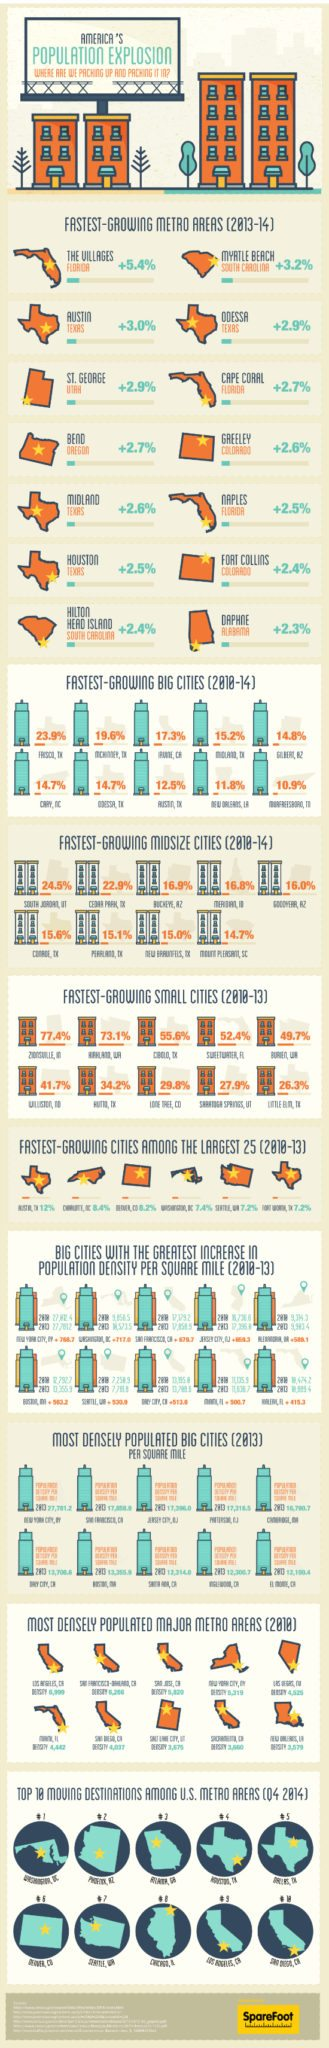 sparefoot-population-1-infographic 550px